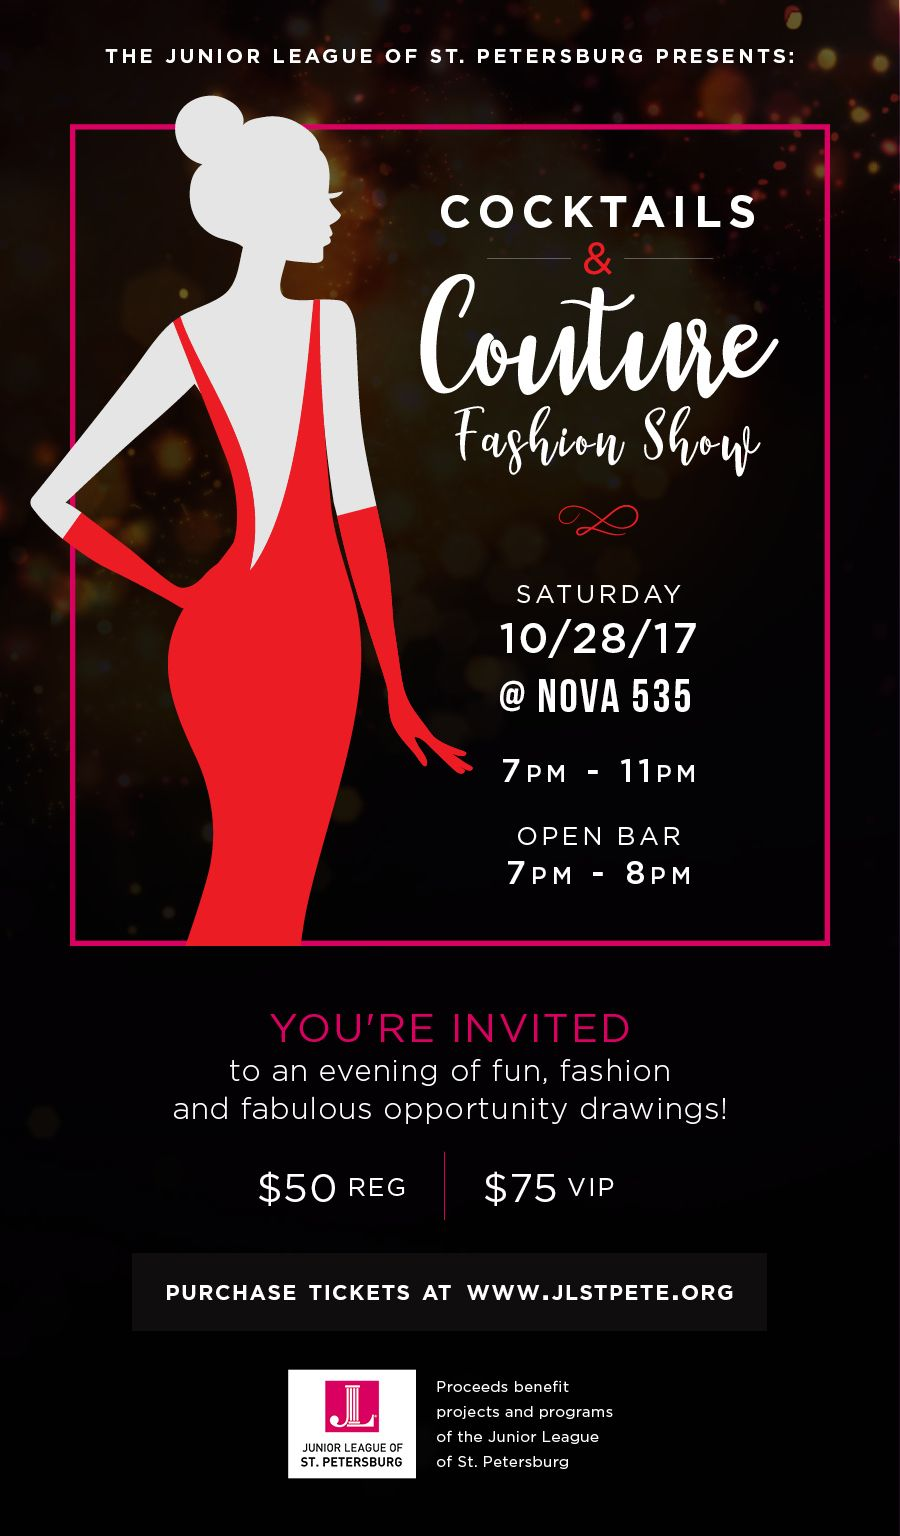 2017 10-28 JLSP Cocktails and Couture Fashion Show at DTSP venue NOVA 535 flyer